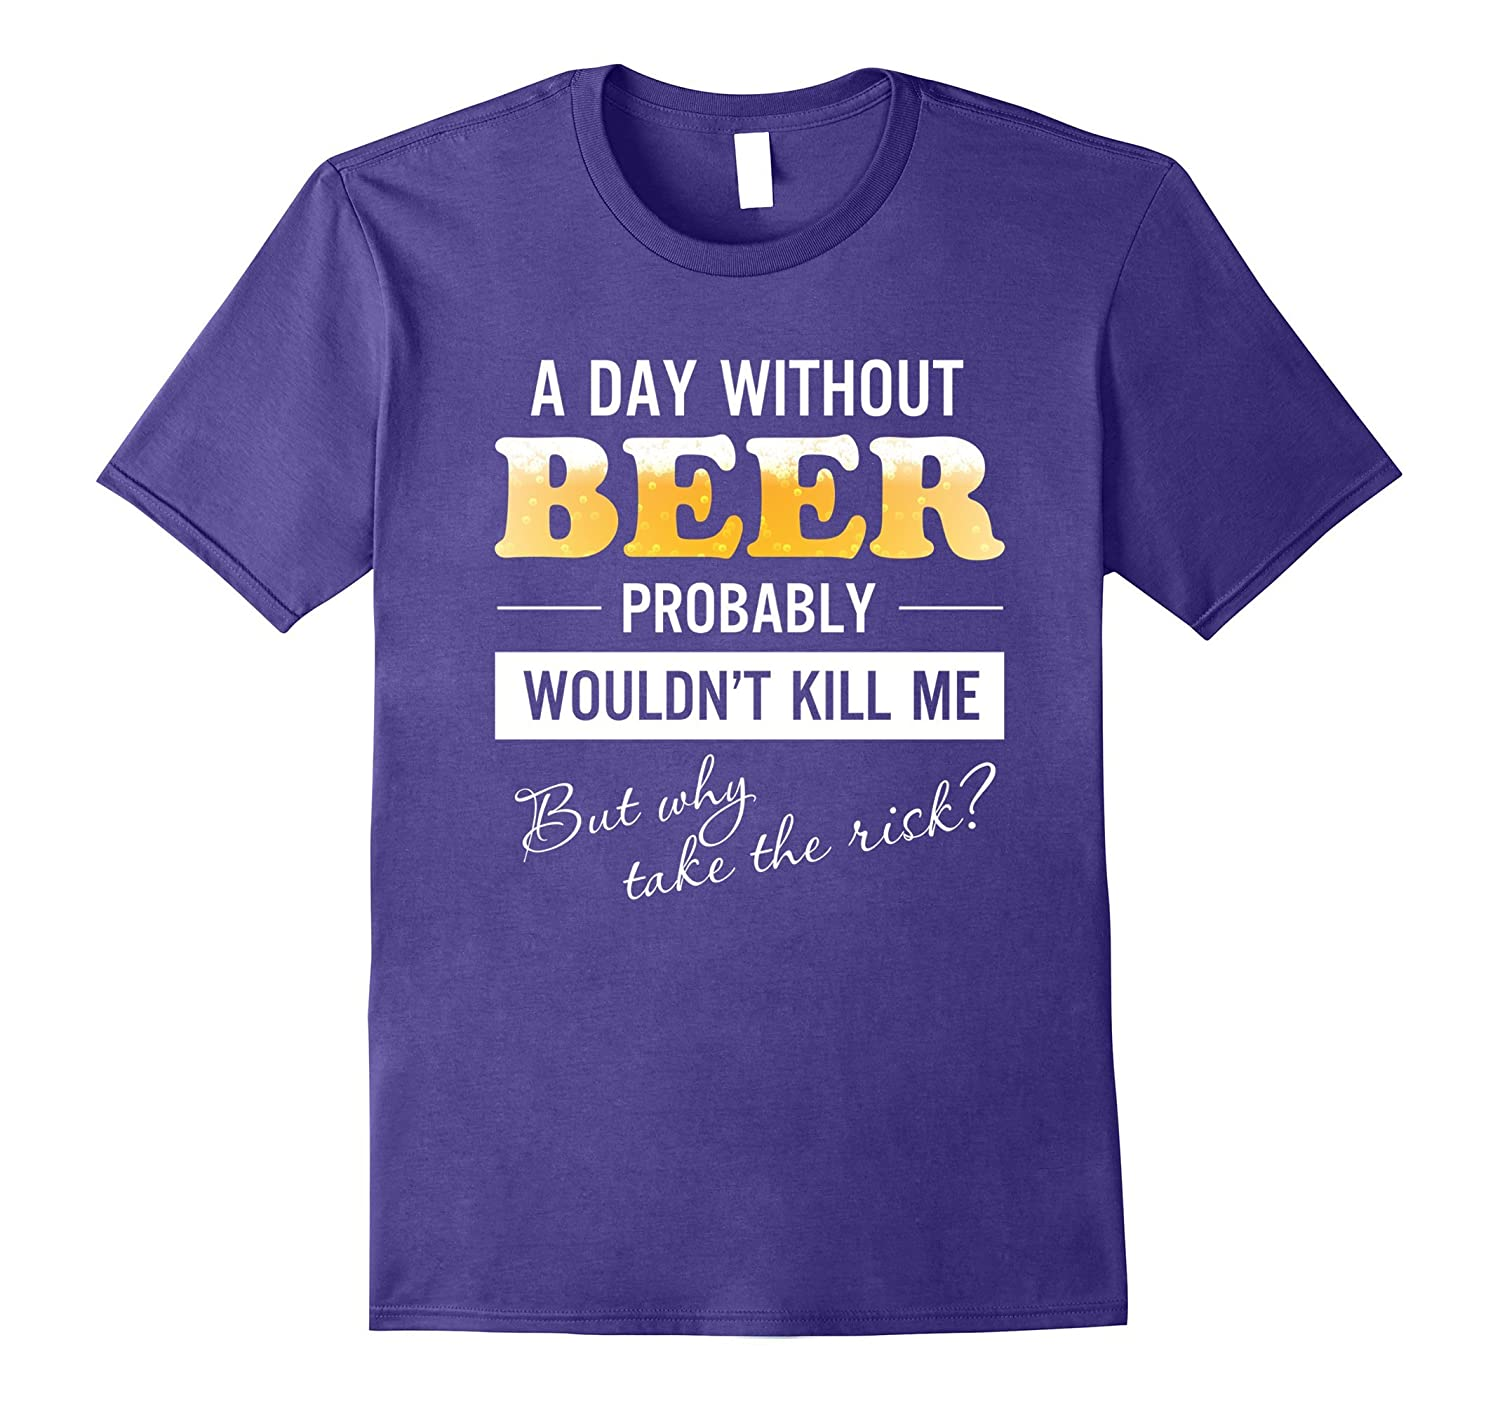 A Day Without Beer Probably Wouldn't Kill Me T-shirt-TH